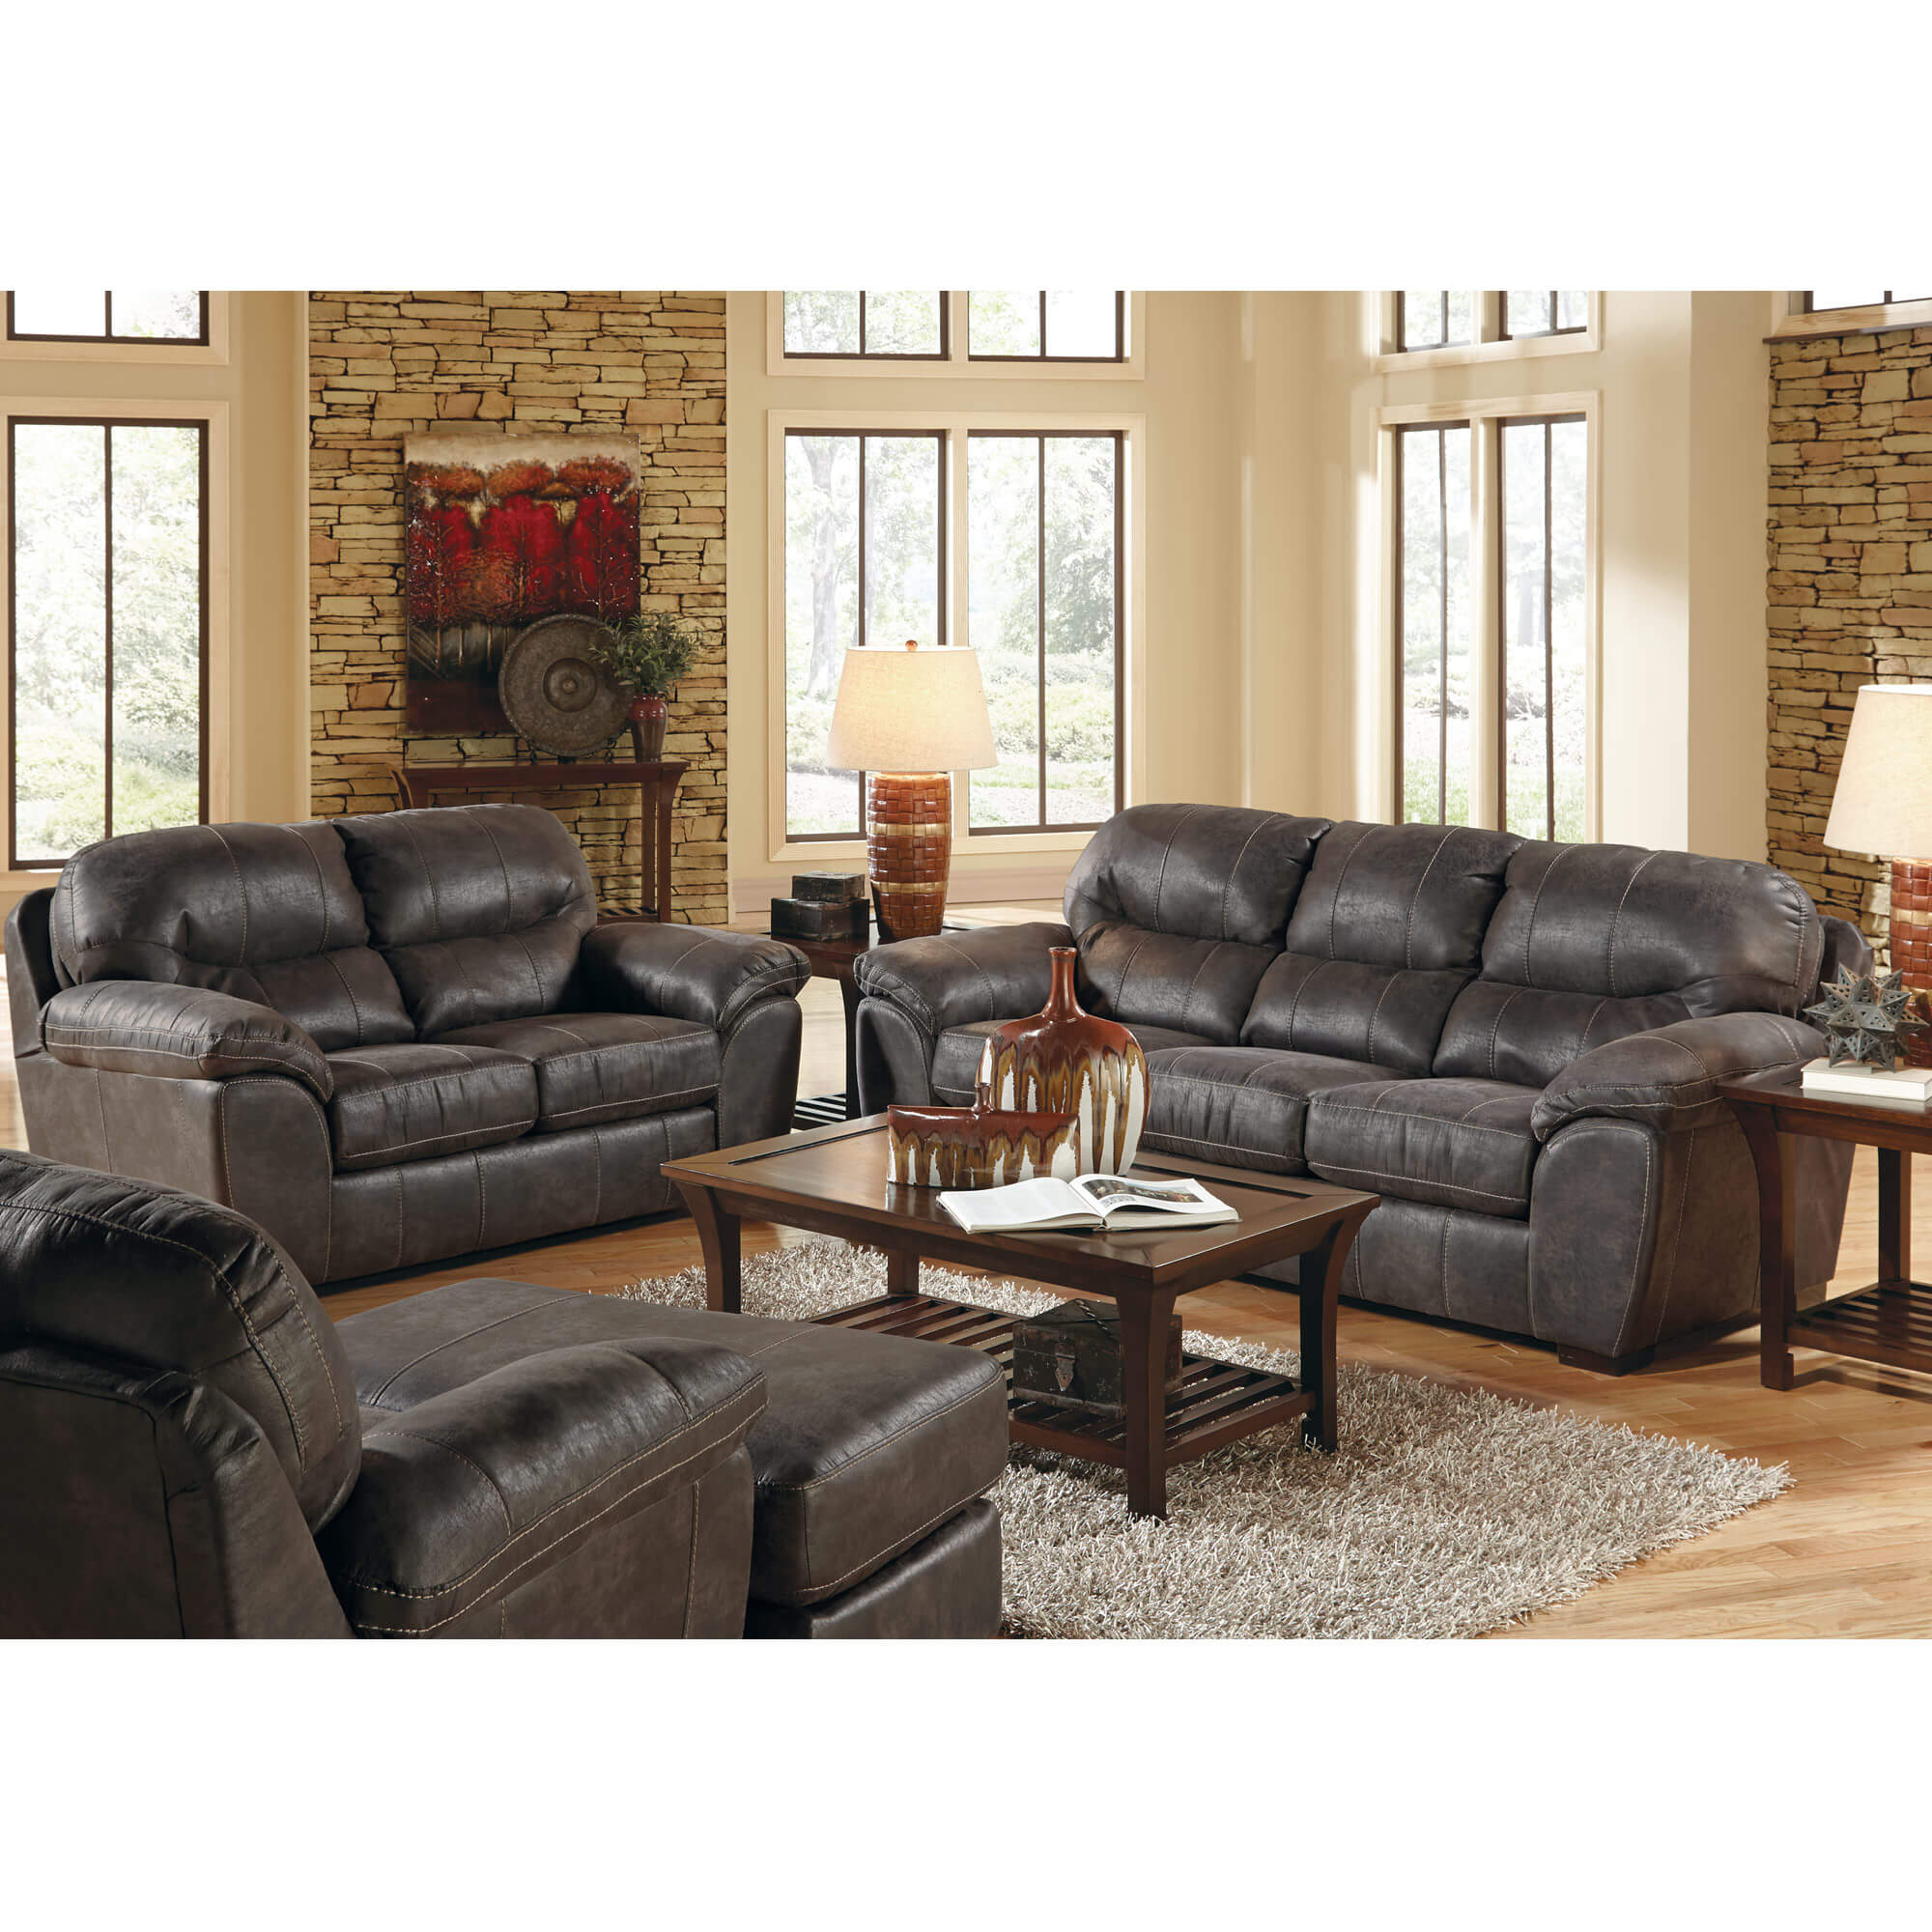 2-Piece Grant Steel Sofa and Loveseat